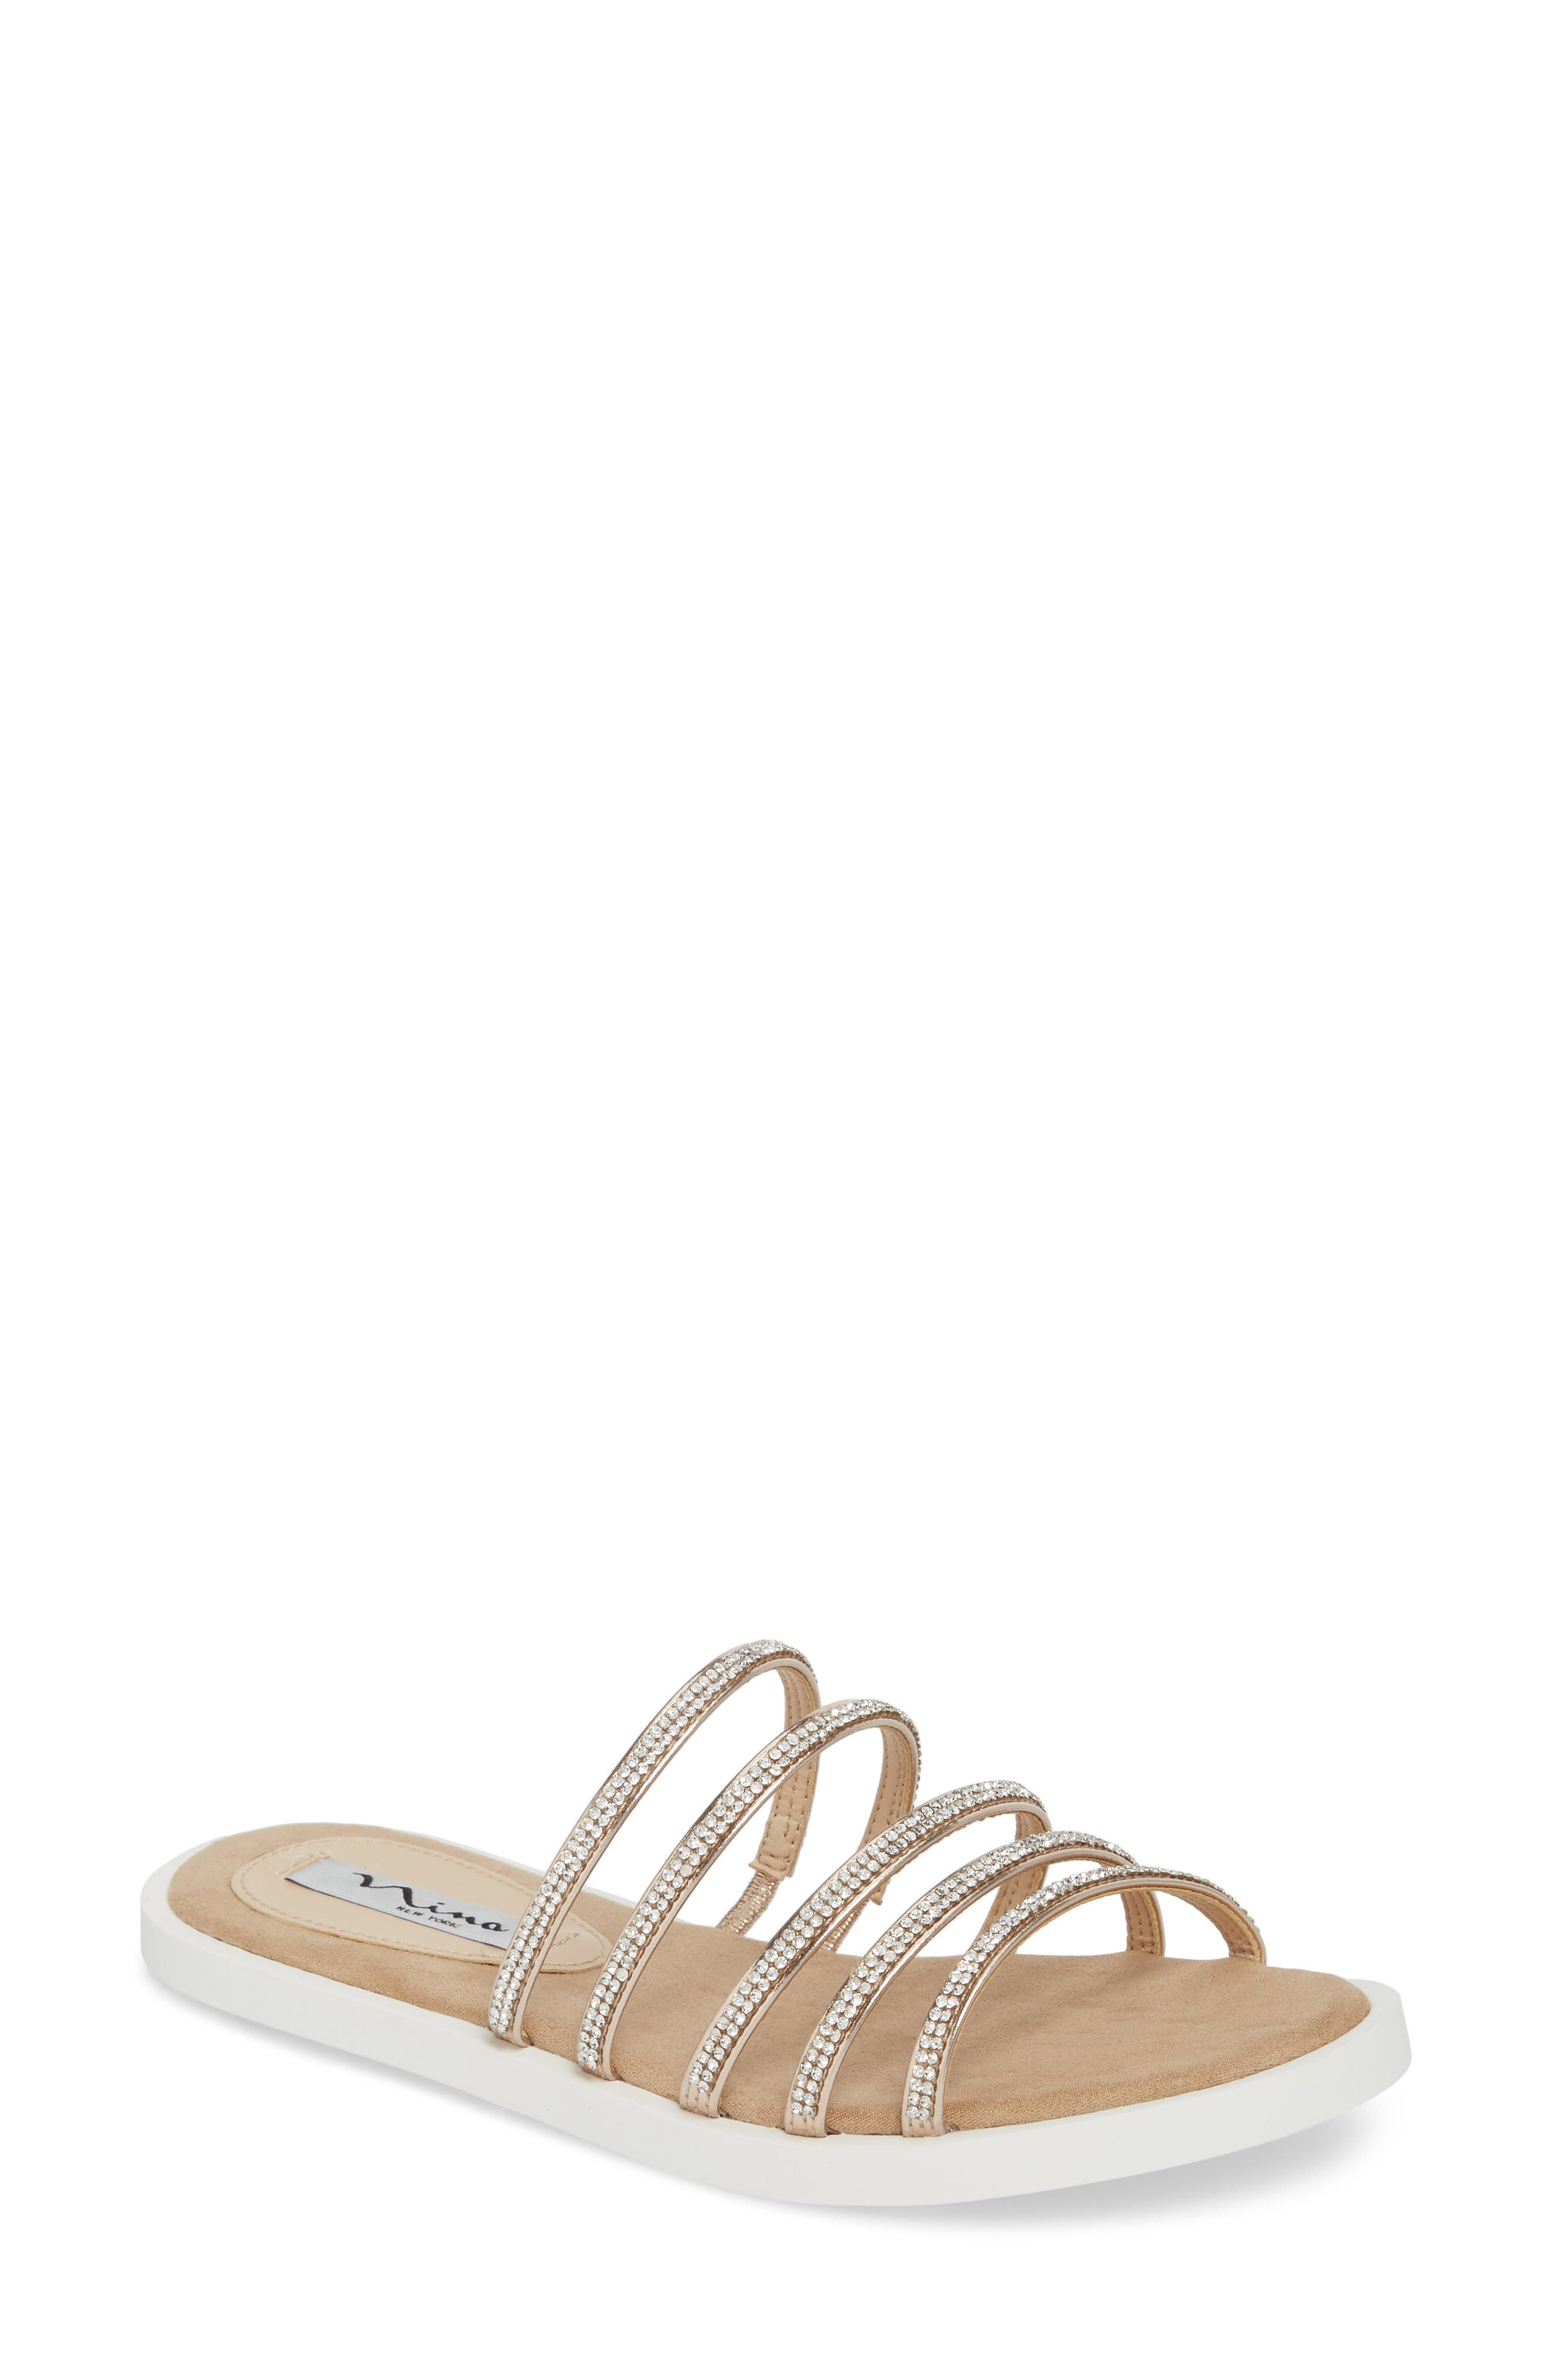 Sabrina Sandal,                         Main,                         color, Rose Gold Fabric